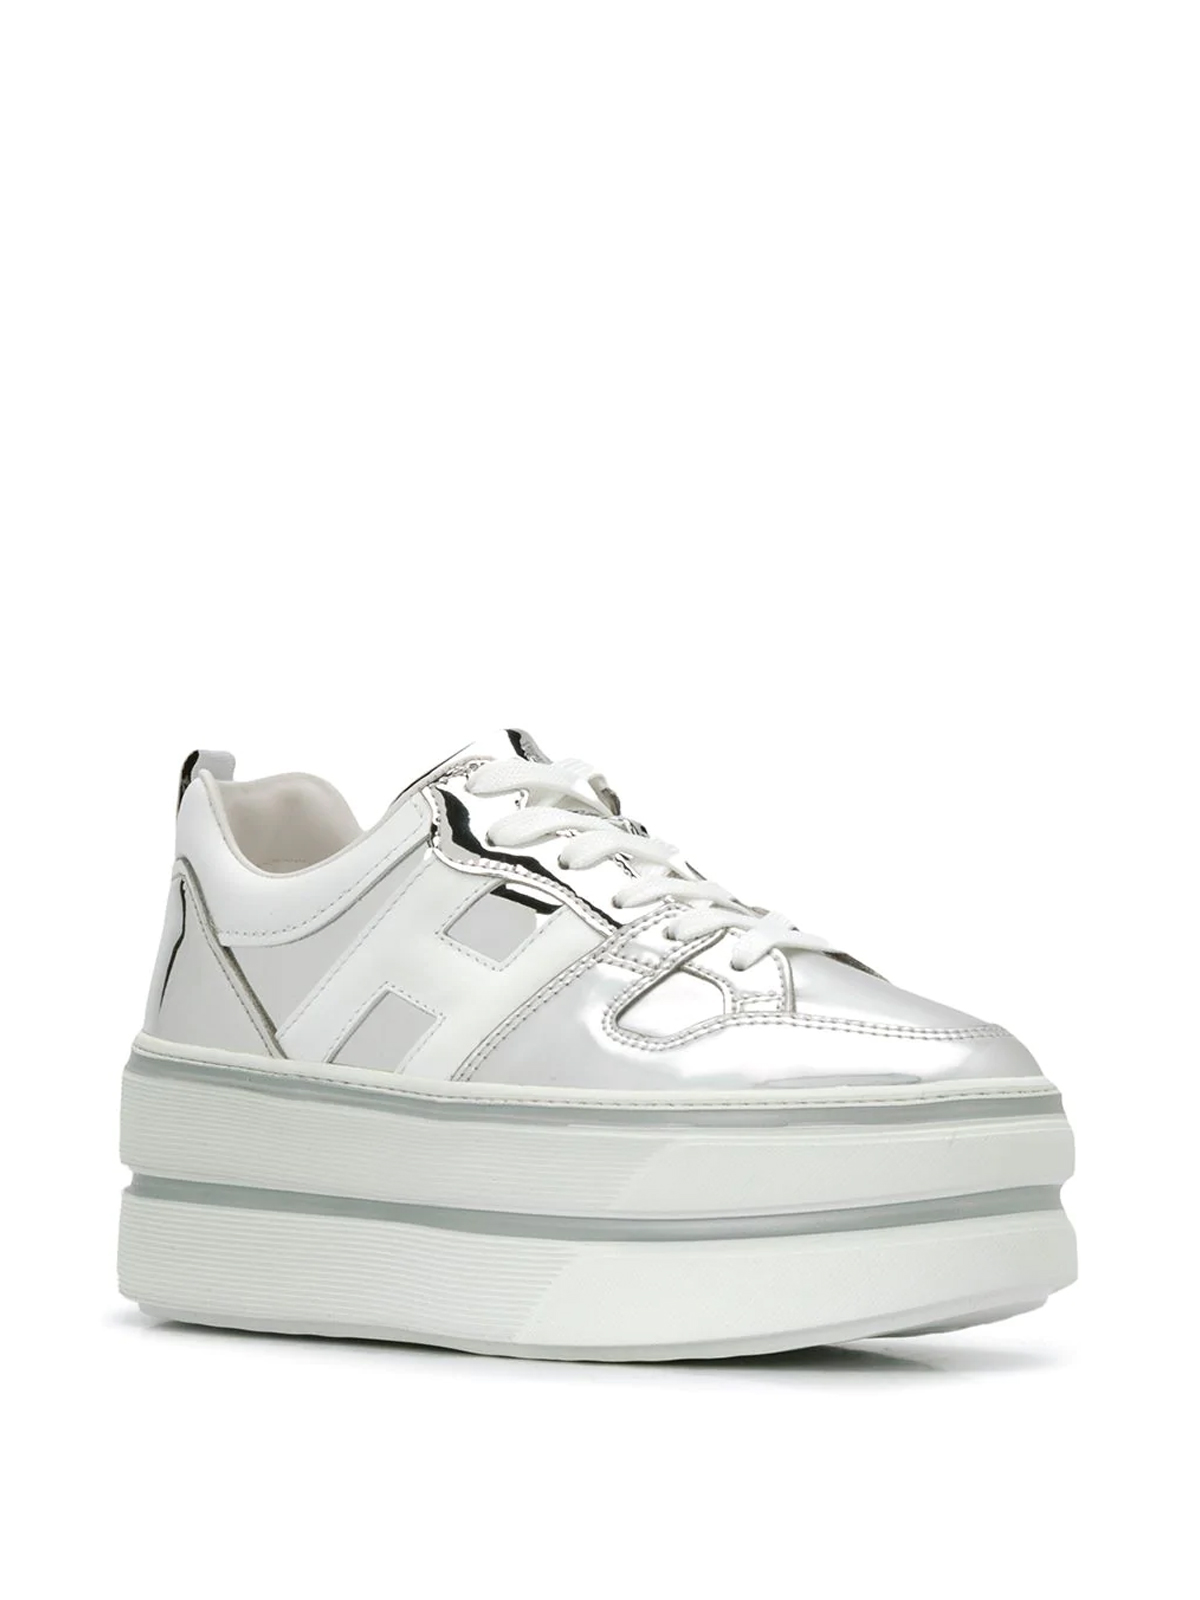 Trainers Hogan - Maxi H449 patent leather platform sneakers ...